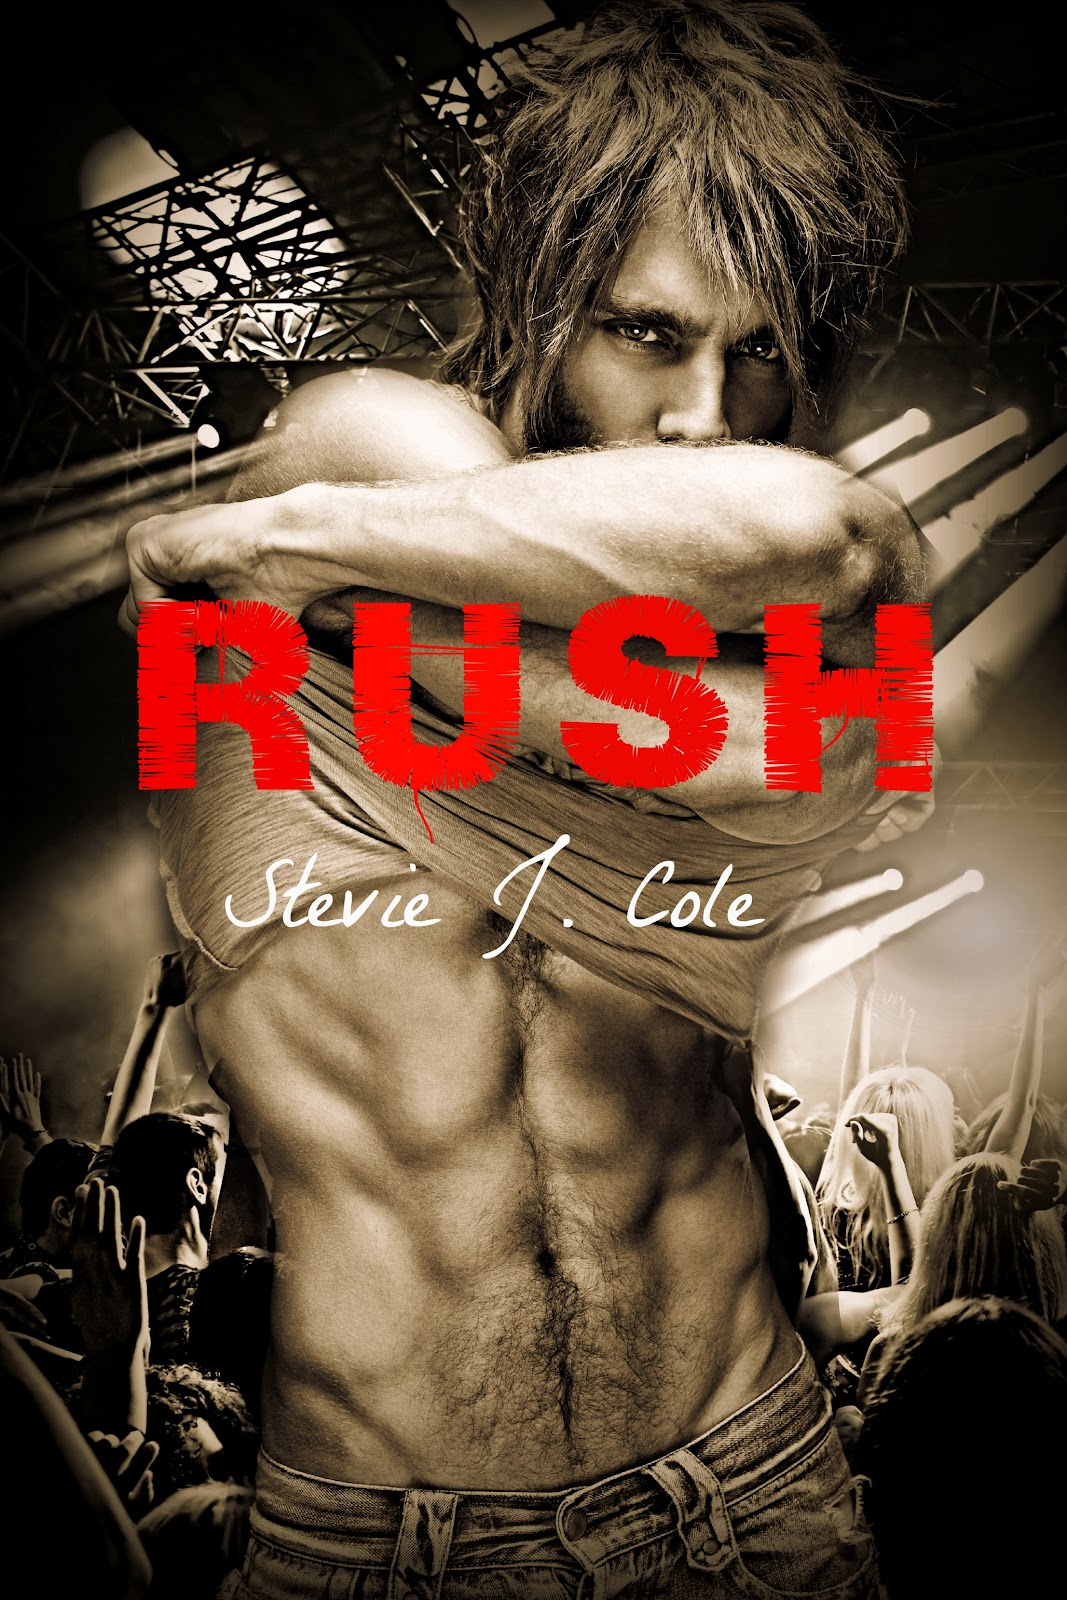 rush cover ebook.jpg